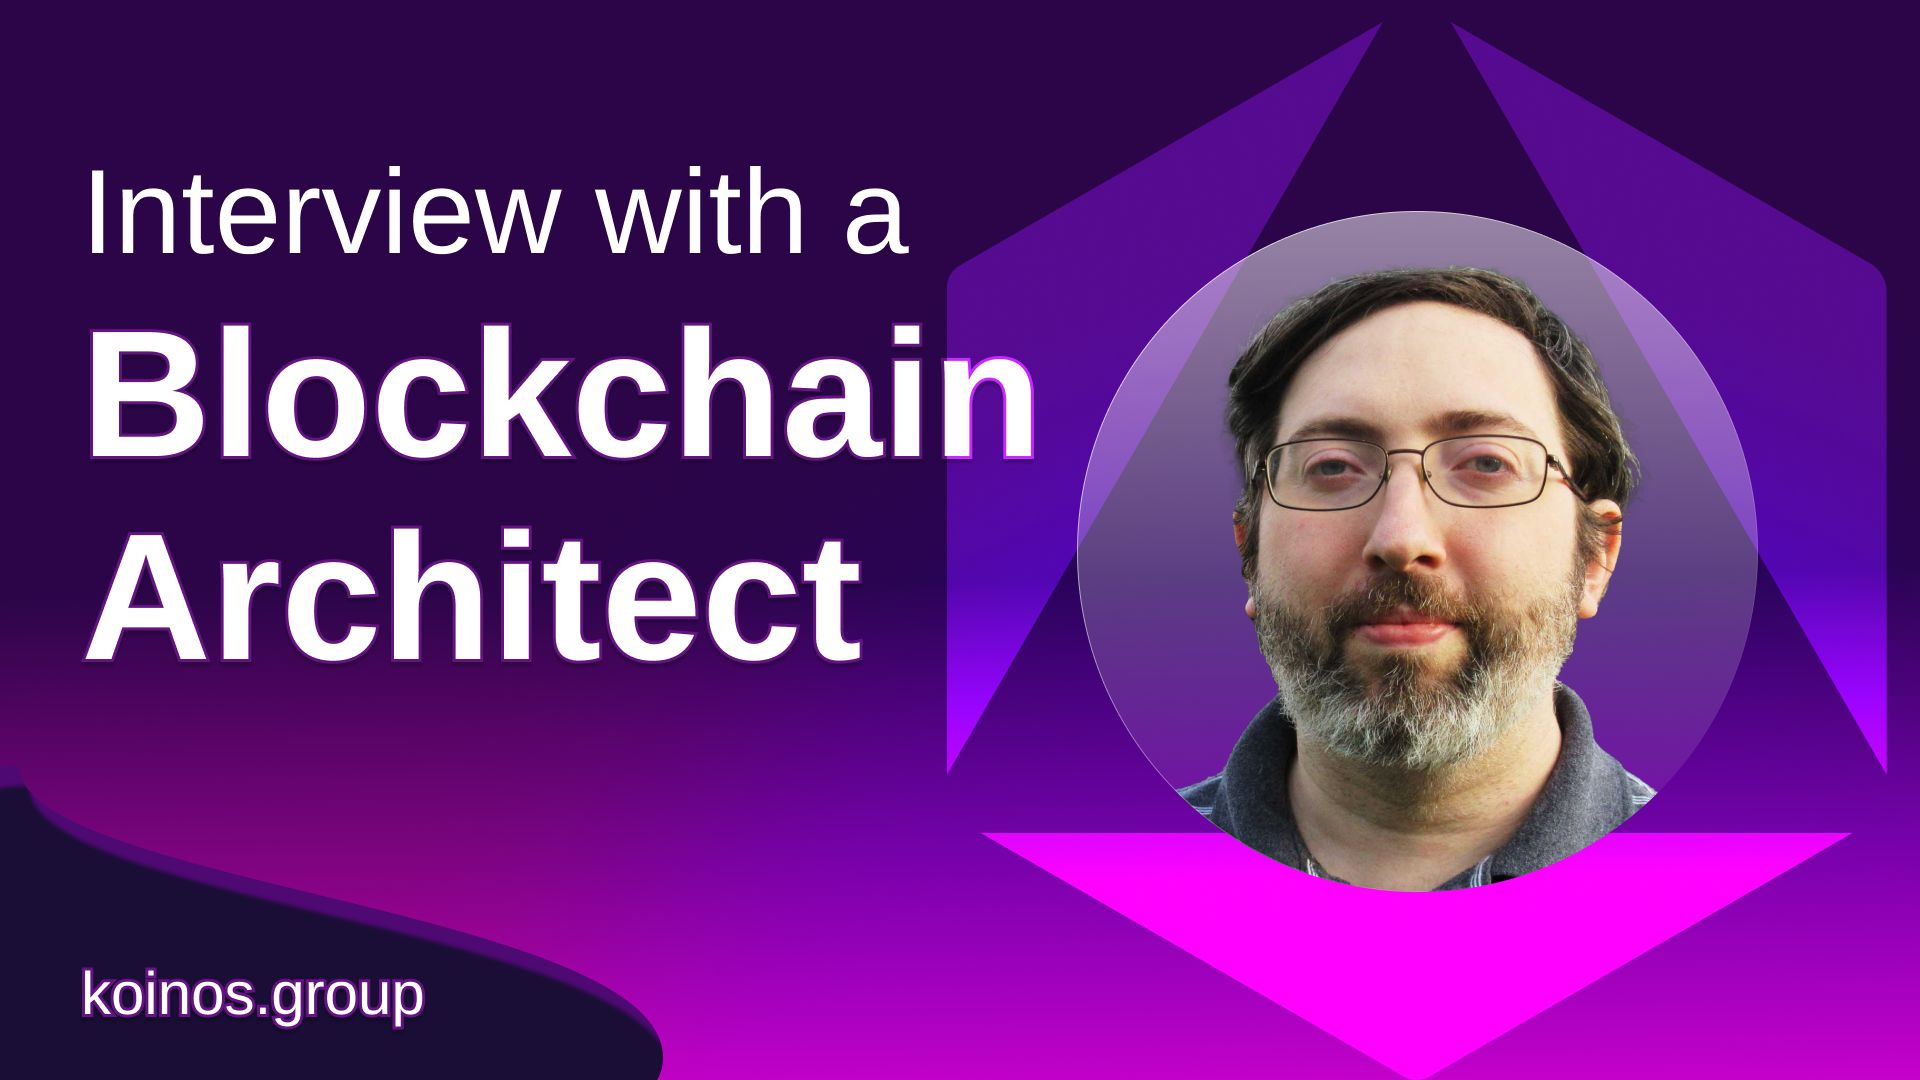 /interview-with-a-koinos-blockchain-architect-nathaniel-caldwell-sen34ti feature image